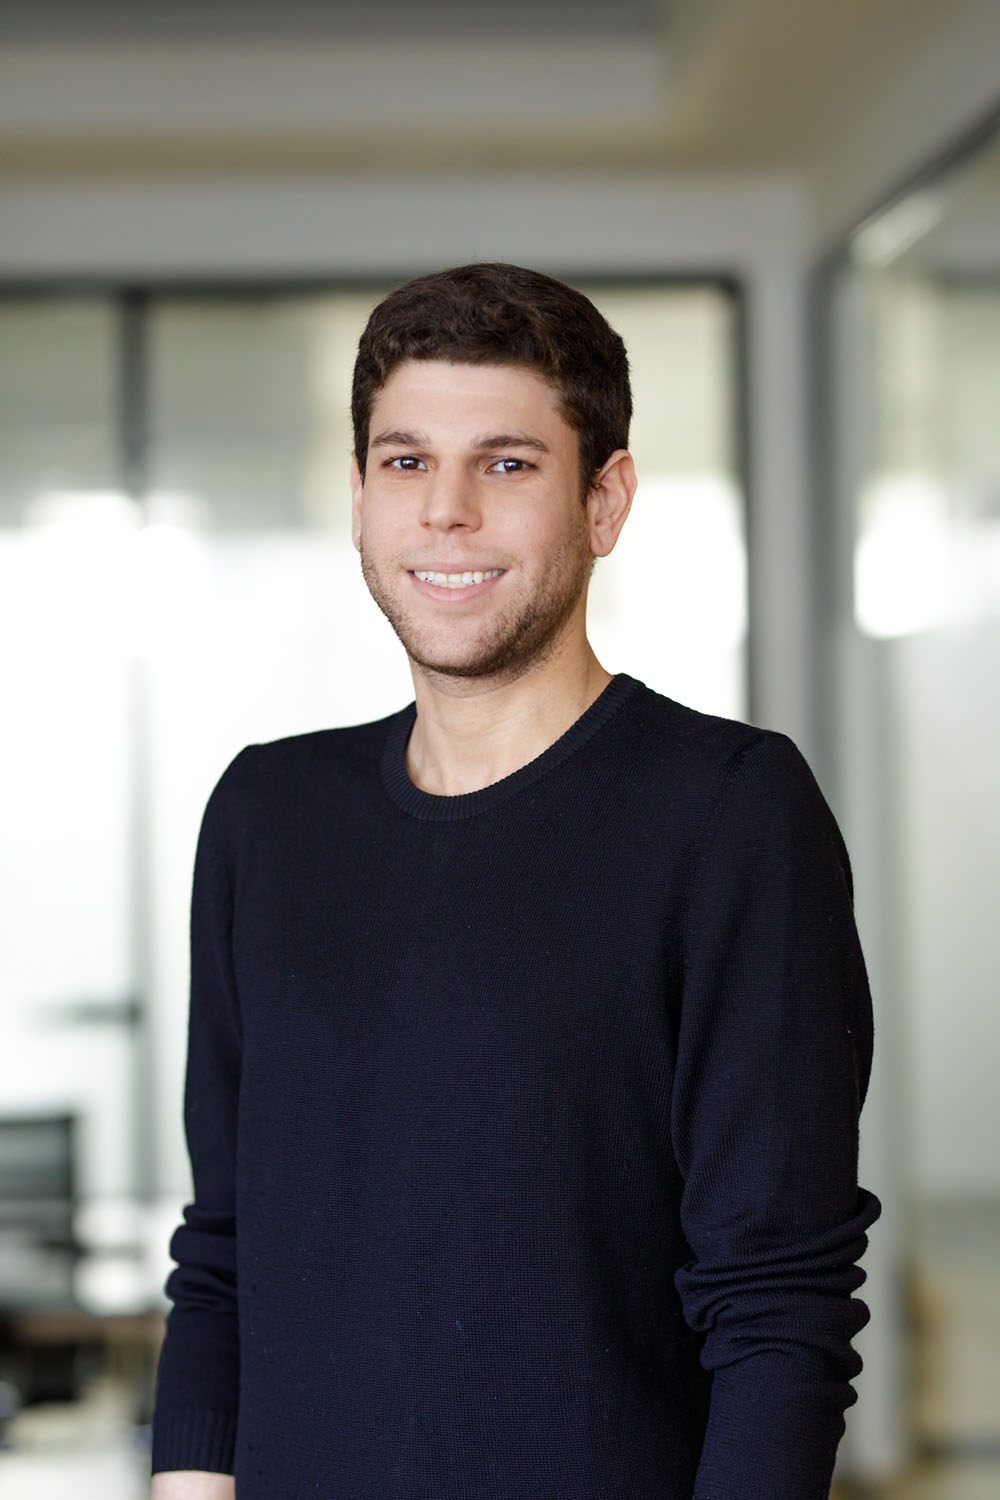 Yuval Maxic   Administrative Manager - Yuval Maxic is Administrative Manager at PICO Venture Partners. Yuval manages PICO's Tel Aviv office and PICO Spaces Tel Aviv. In this role, he oversees budget planning, project execution, and relations with members of PICO Spaces.Prior to joining PICO, Yuval worked at Cohen Naaman Ltd., where he managed four boutique hotels, overseeing operations including marketing and acquisition processes of properties in Europe for investment and rental.Yuval was a mentor and coordinator of youth activities at 'IGY youth at-risk organization' and established the organization's entrepreneur activist group. Yuval holds a BSc in Biotechnology from Tel Aviv University.Favorite restaurant: Hotel Montefiore (Tel Aviv)Favorite book: All Over Creation by Ruth OzekiOutside of work: Playing the guitar, ukulele & pianoBest Advice Ever Received: If you can't love yourself, how the hell you gonna love somebody else?